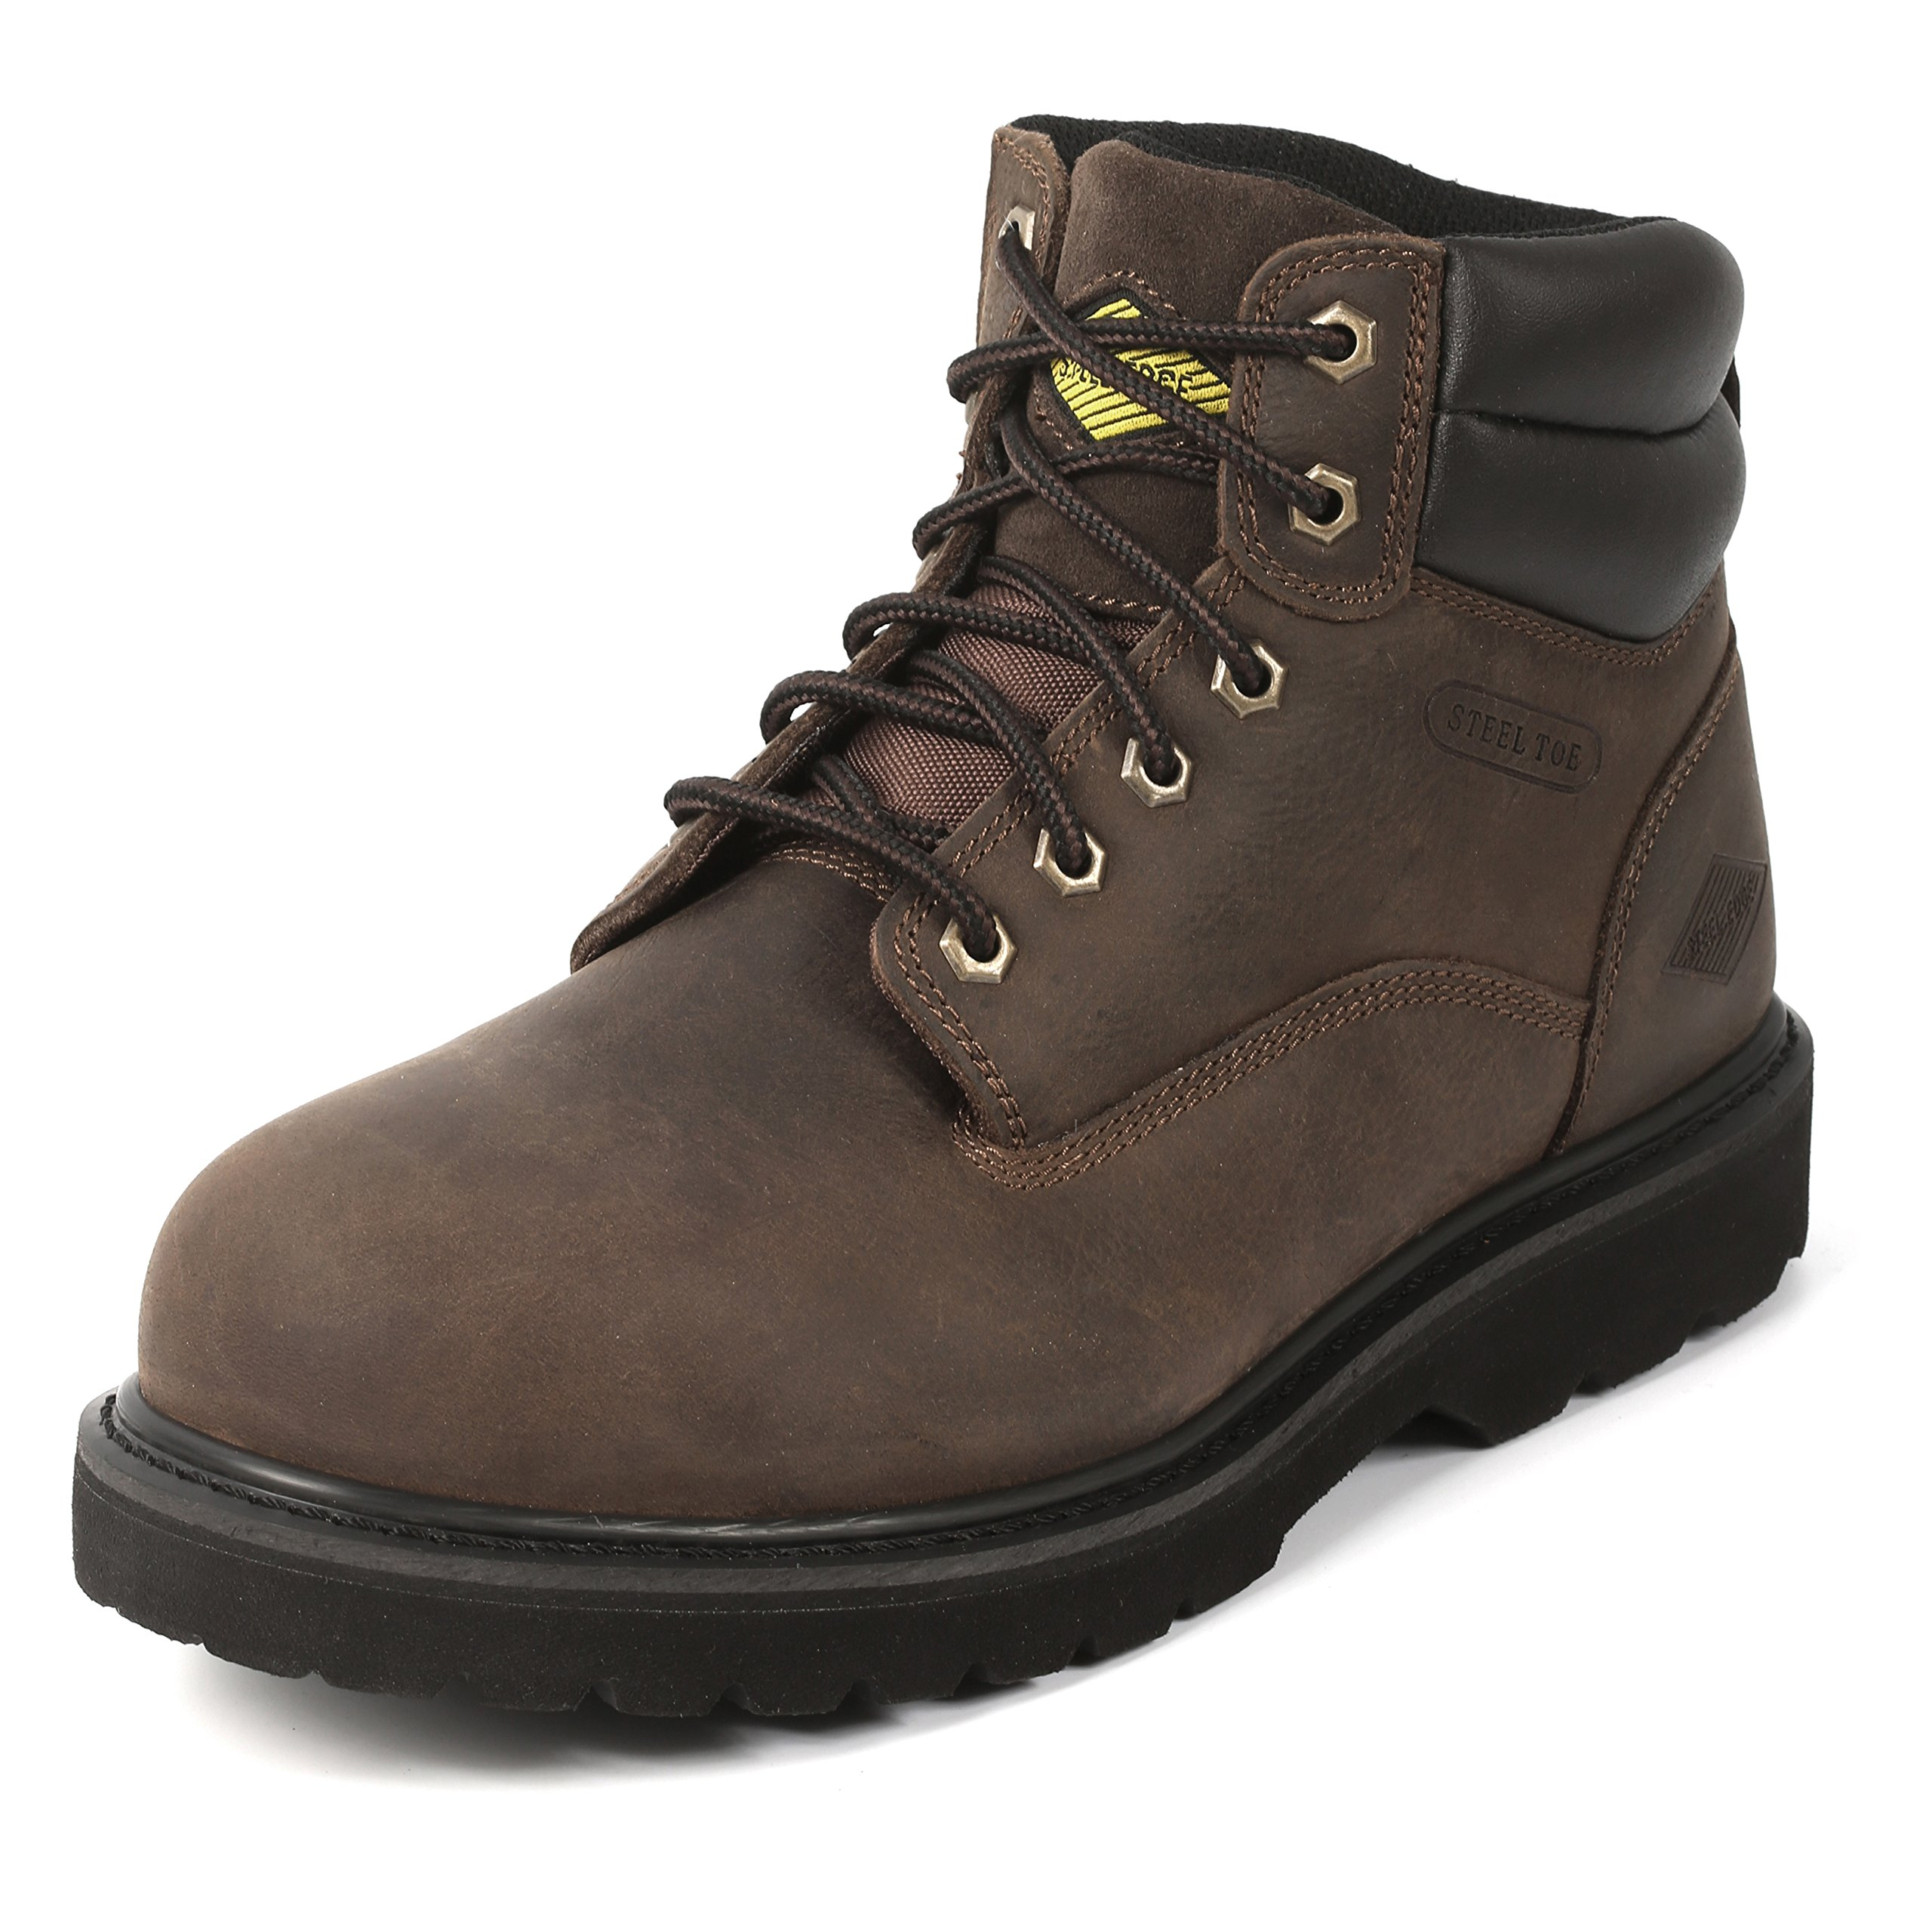 """6"""" Steel Toe Work Boots - Timberland Style - Oil Slip Resistant Safety Shoes (8.5)"""